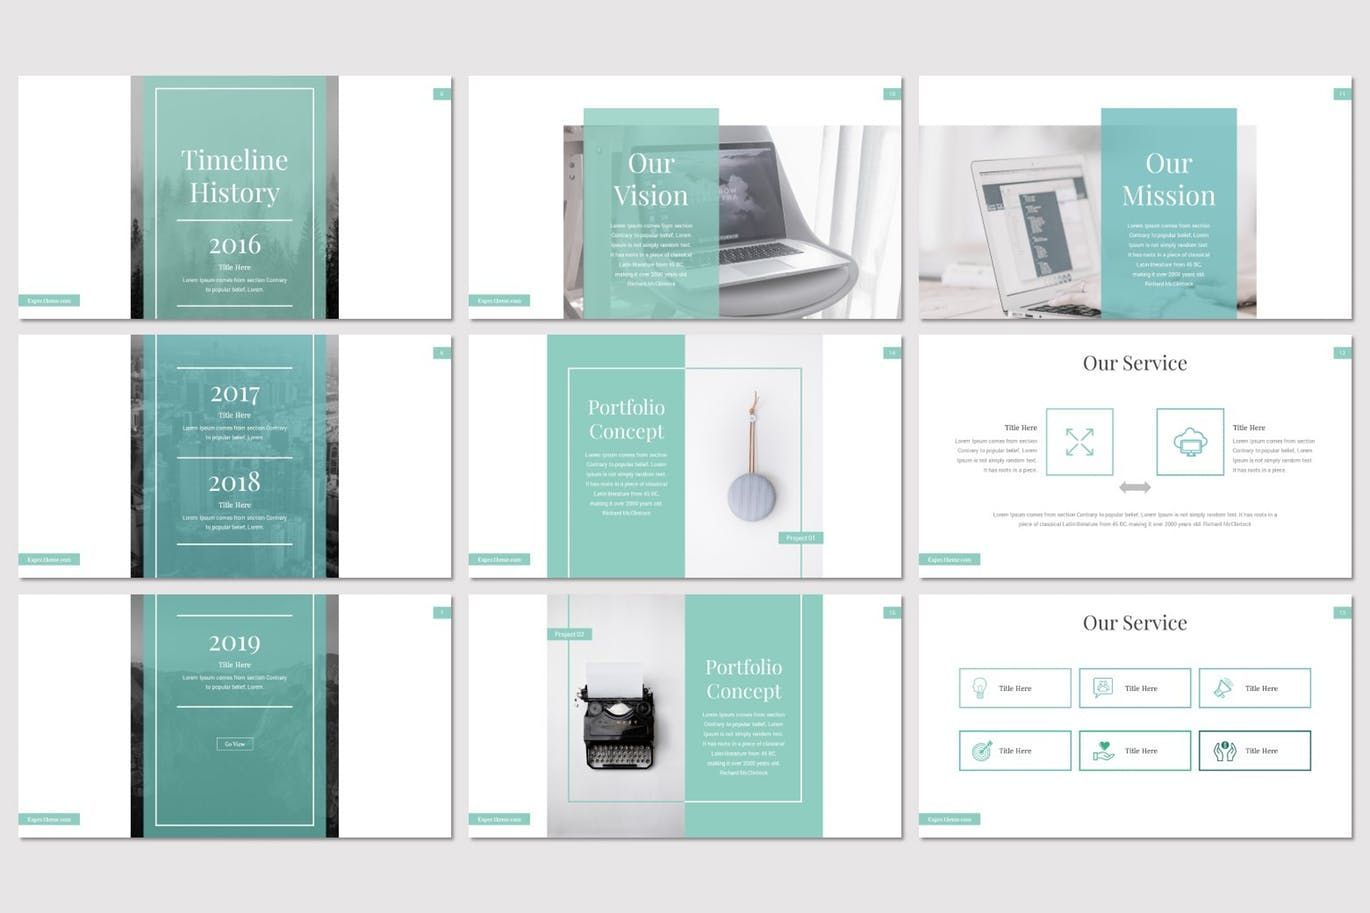 Expec - PowerPoint Template, Slide 3, 07820, Presentation Templates — PoweredTemplate.com